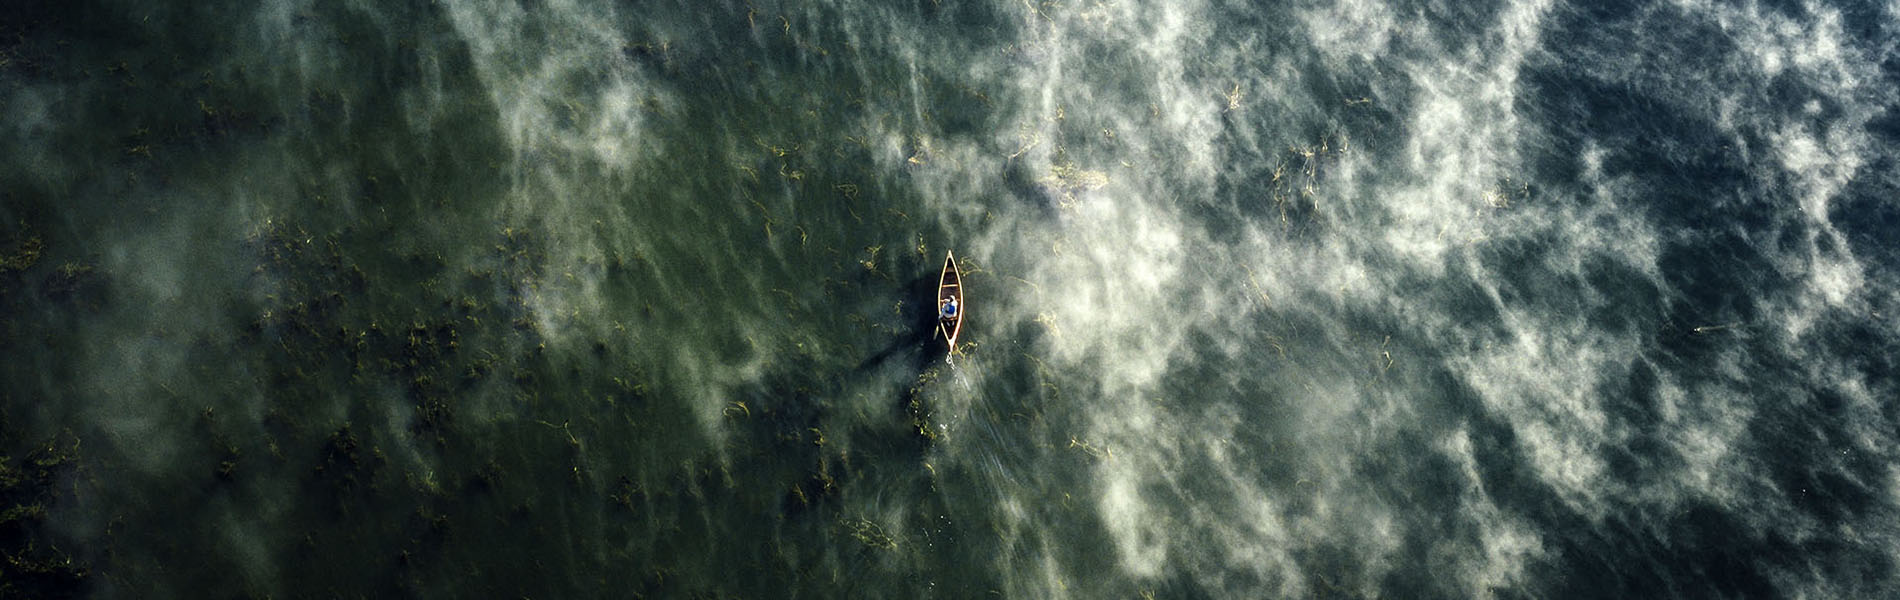 Aerial view of a canoe (Photo: Goh Iromoto)